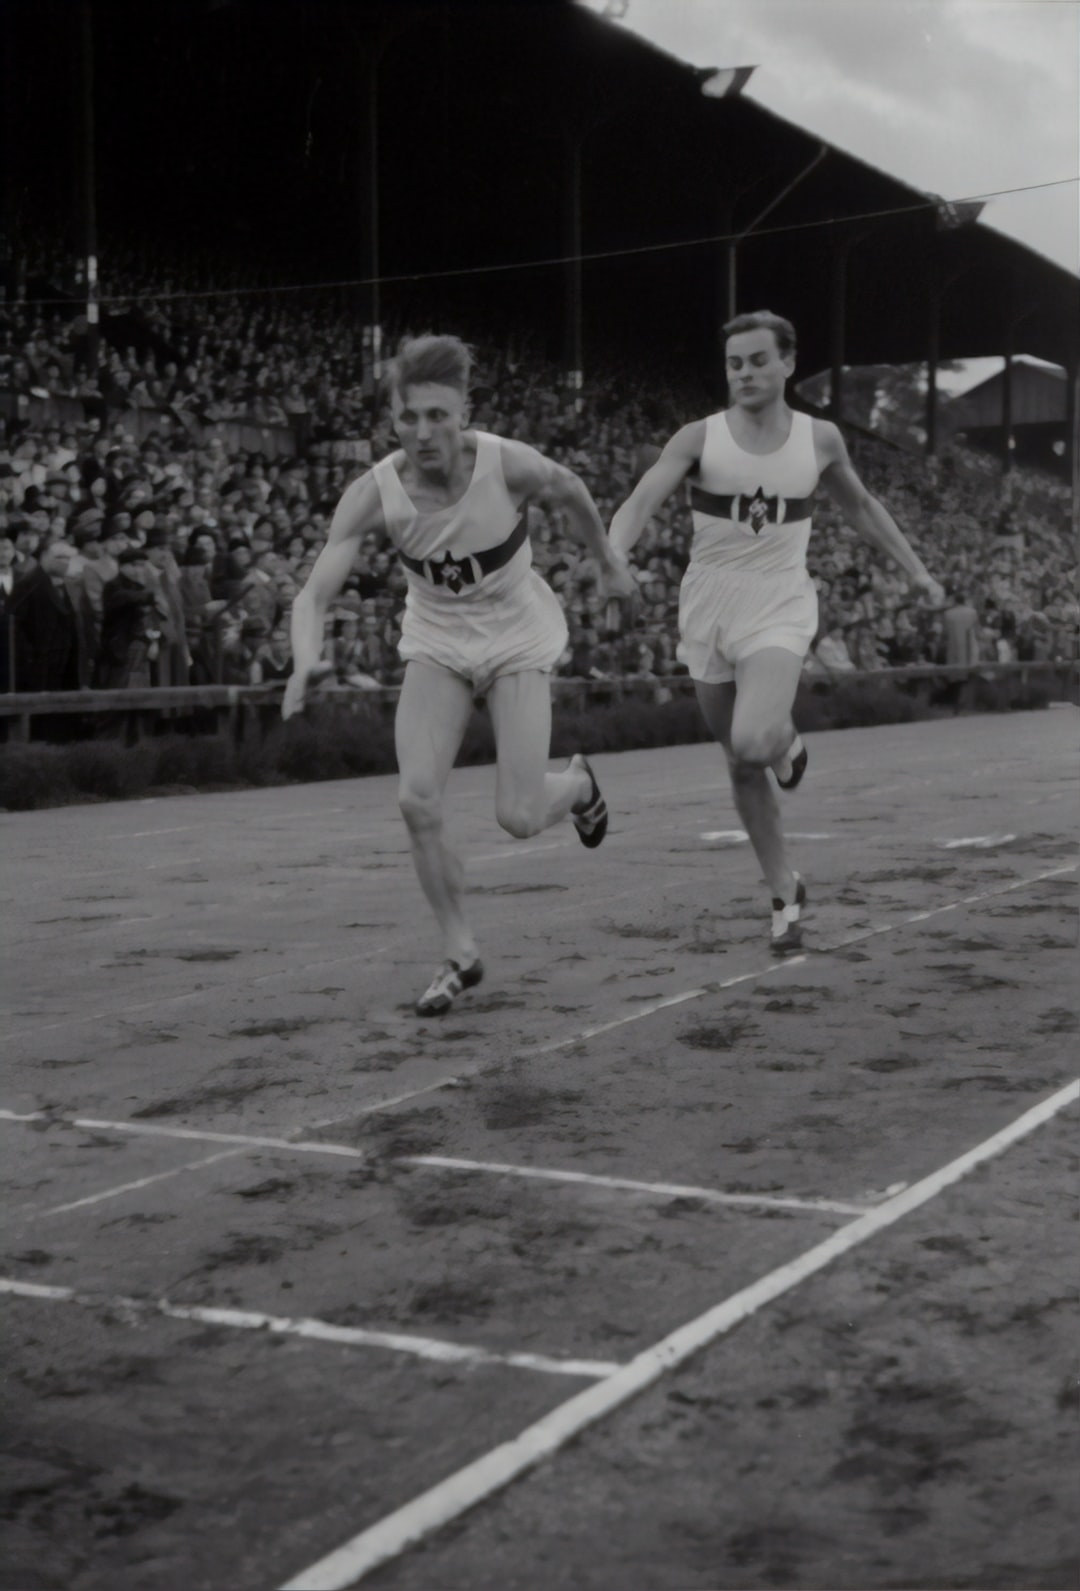 Relay race: German runner hands over the relay. Athletics championships 1940